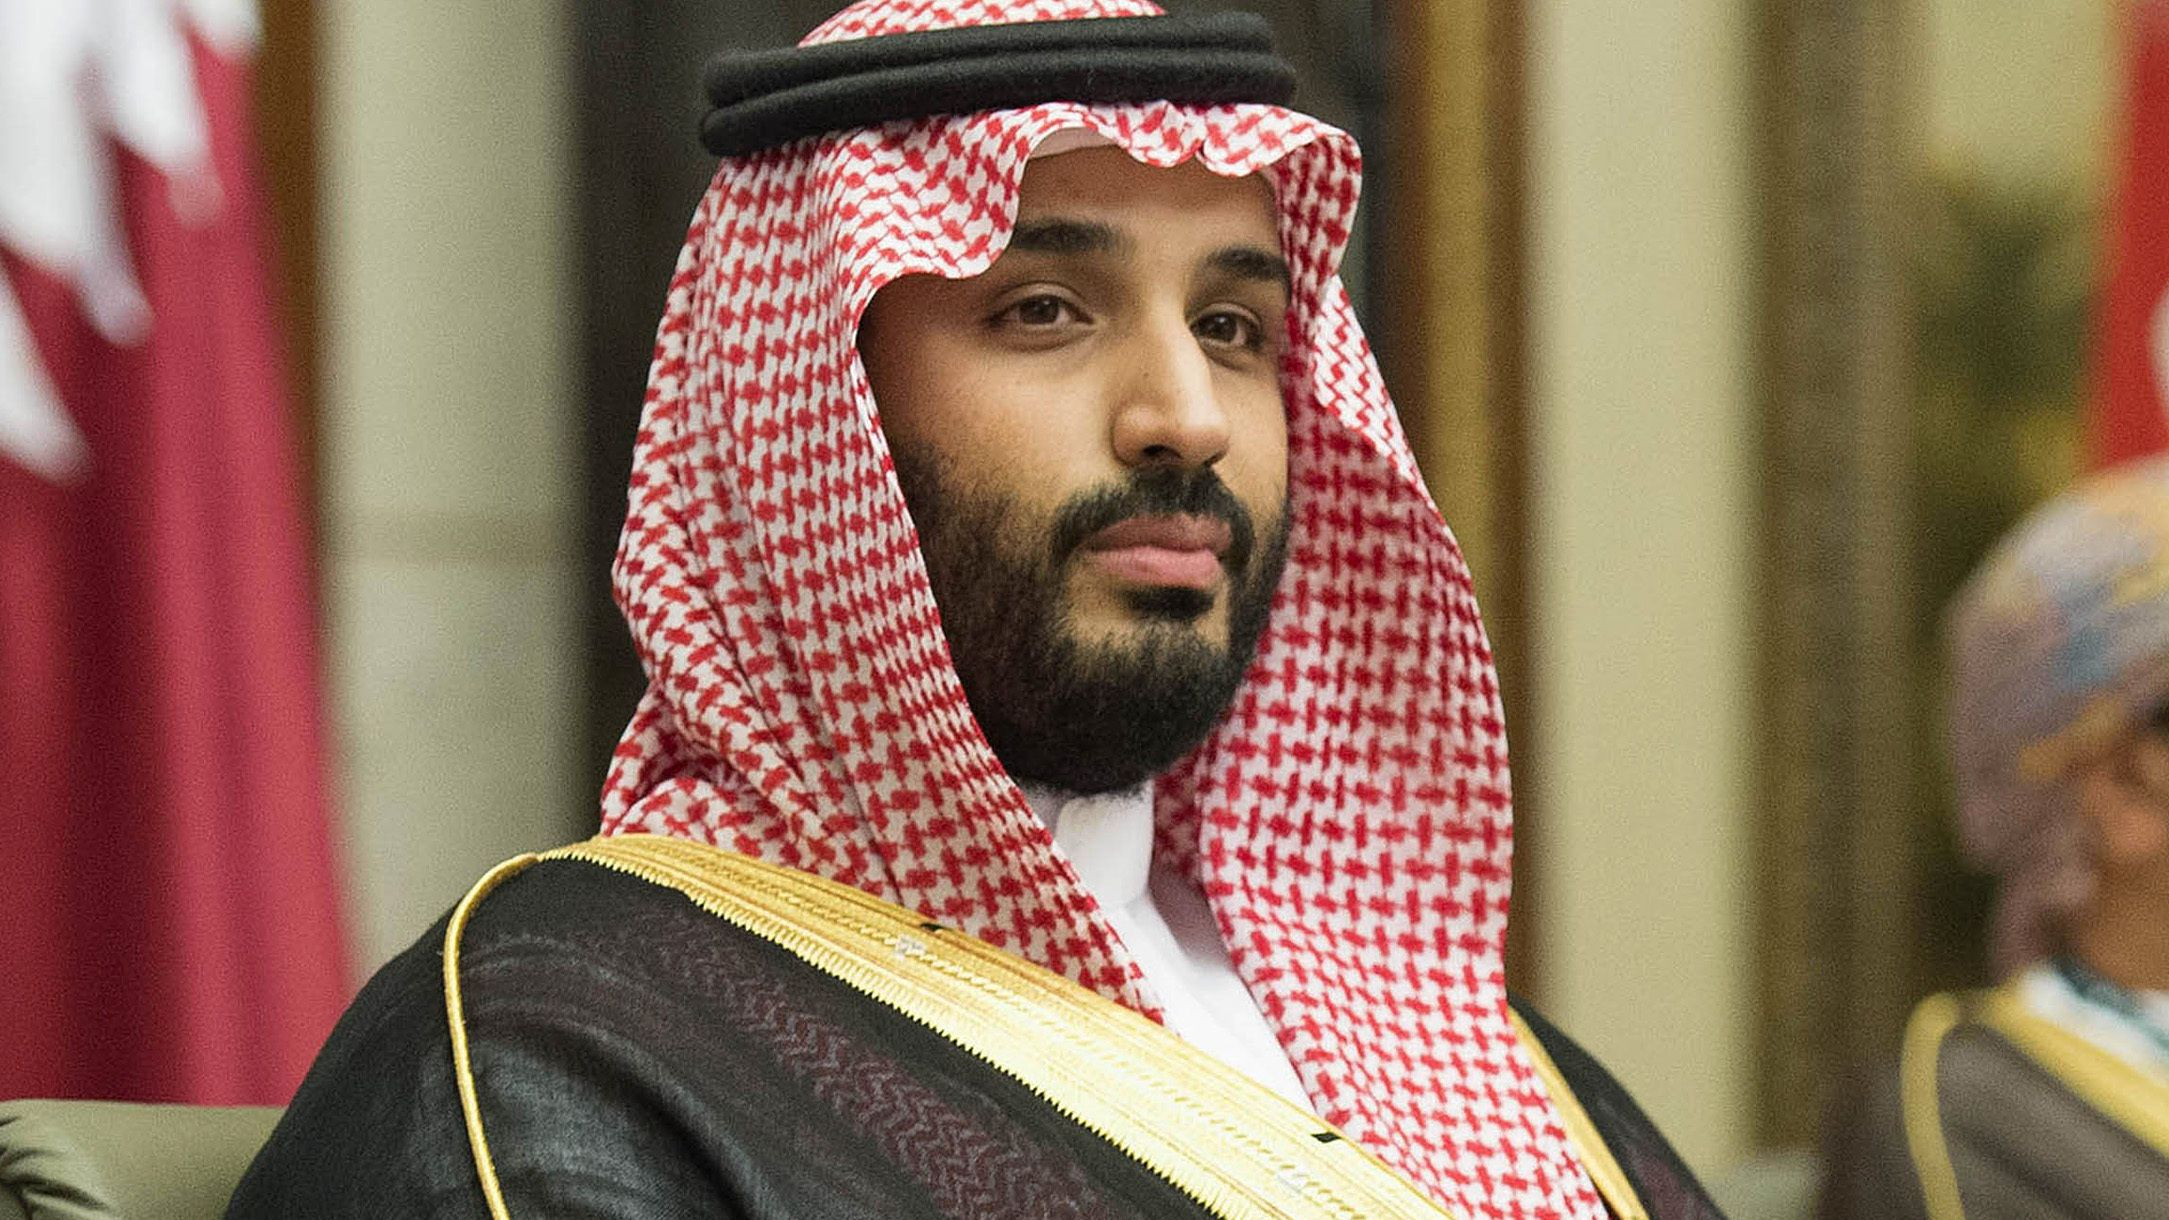 Decades Old Oil Reliance May Stymie Saudi Prince S Vision Prince Saudi Arabia Mohammed